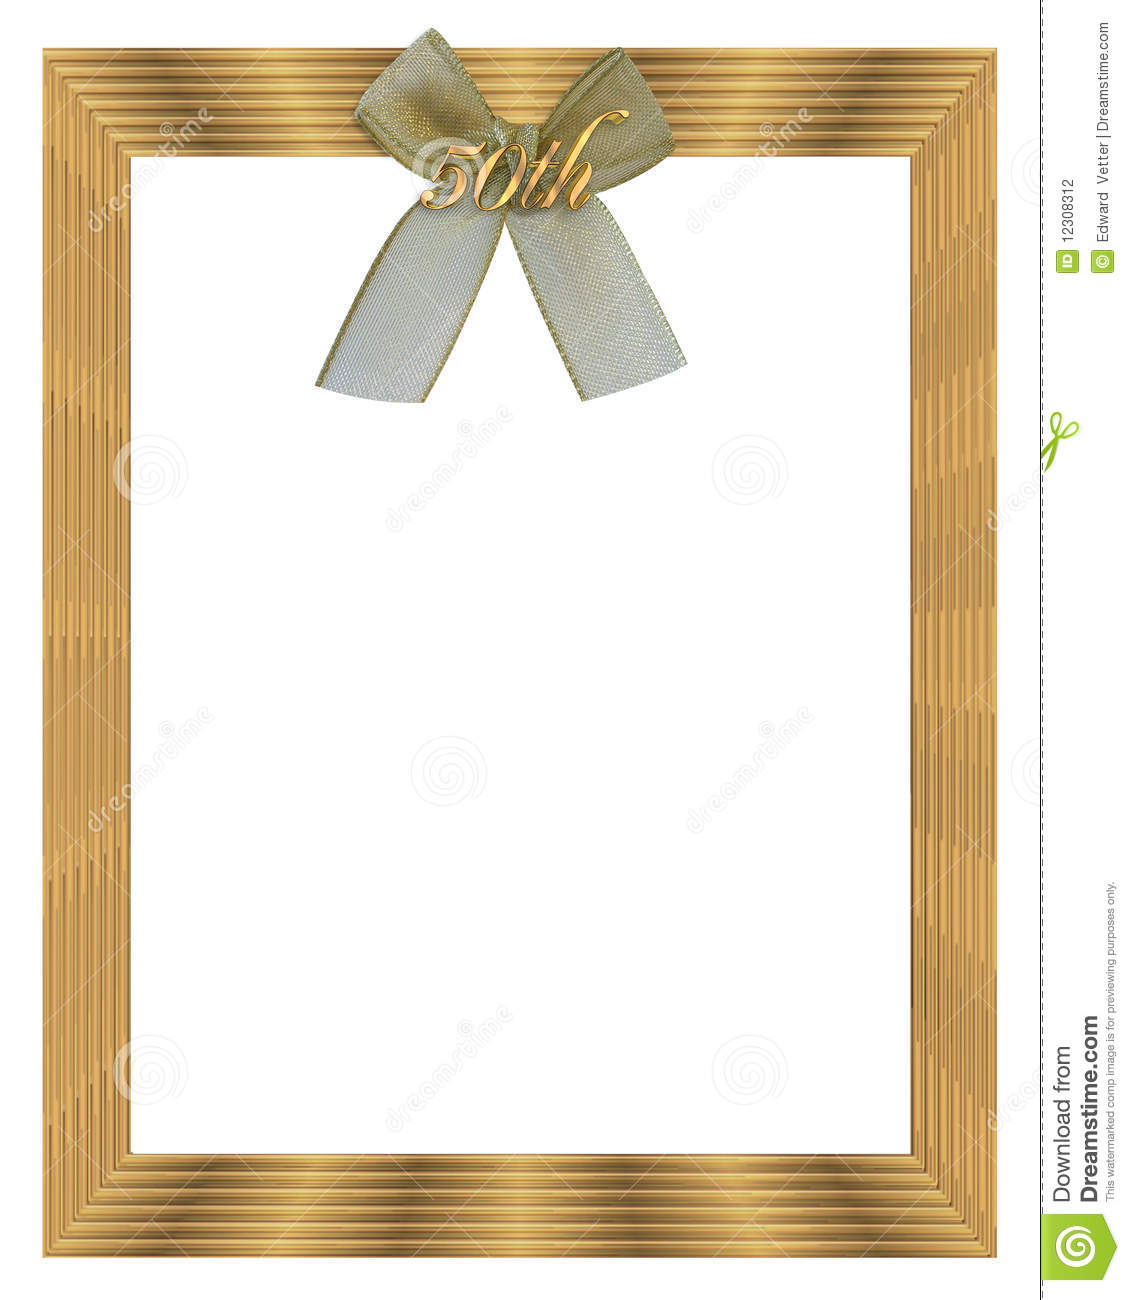 50th Wedding Anniversary Borders: 50th Wedding Anniversary Border Frame Stock Photography